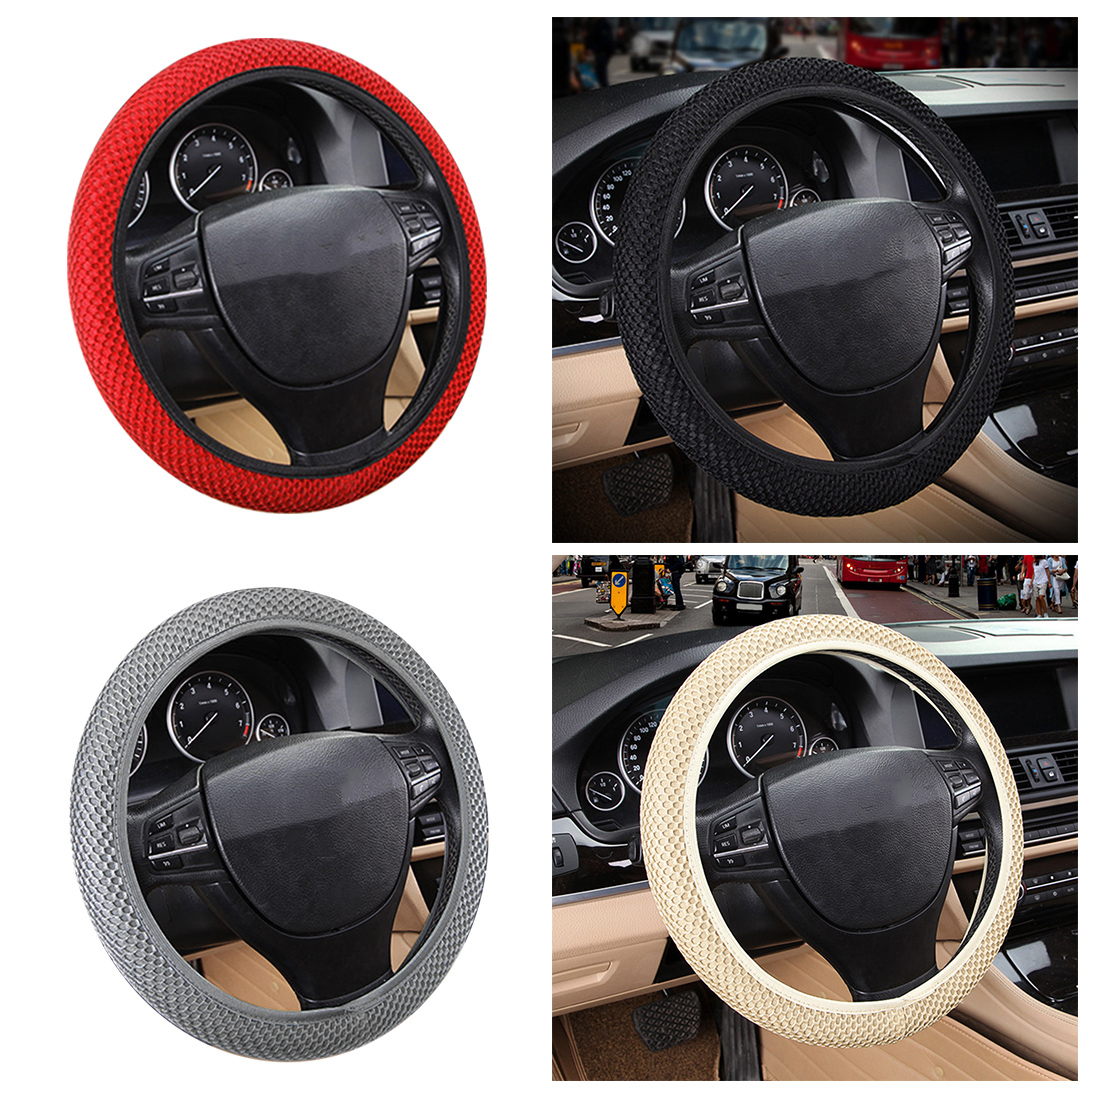 Dewtreetali Car Steering Wheel Cover Breathable Sandwich Fabric Universal Steering Wheel Protector Auto Decoration Car Styling